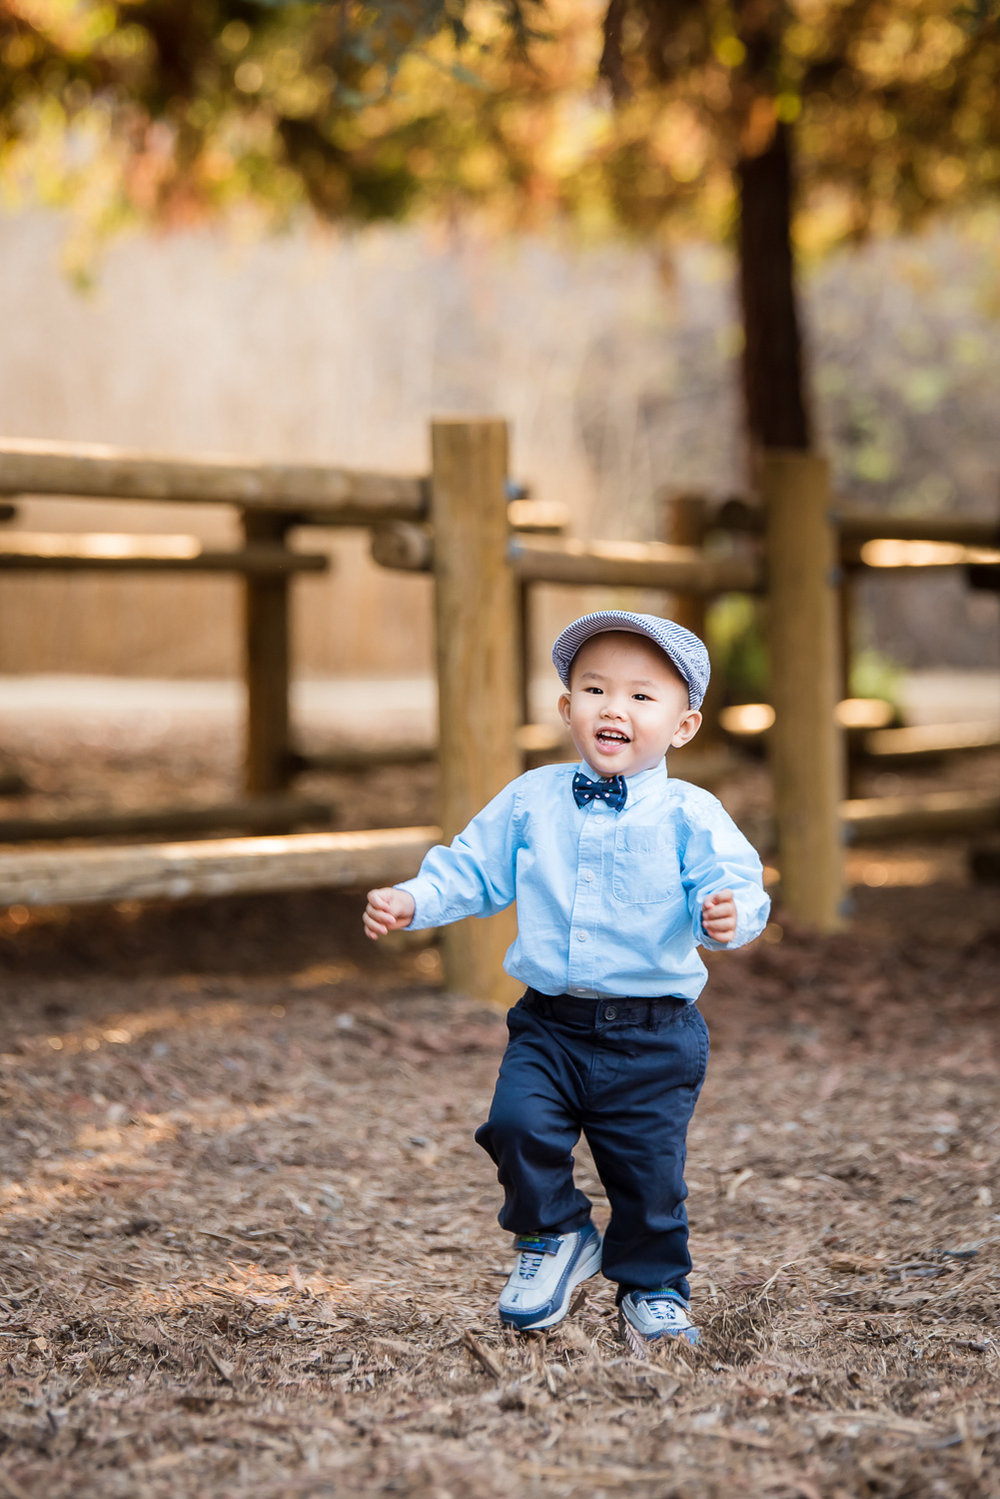 mini_fall_family_session_orange_county_irvine_newport_costa_mesa_children_child_photos_carbon_canyon (1).jpg